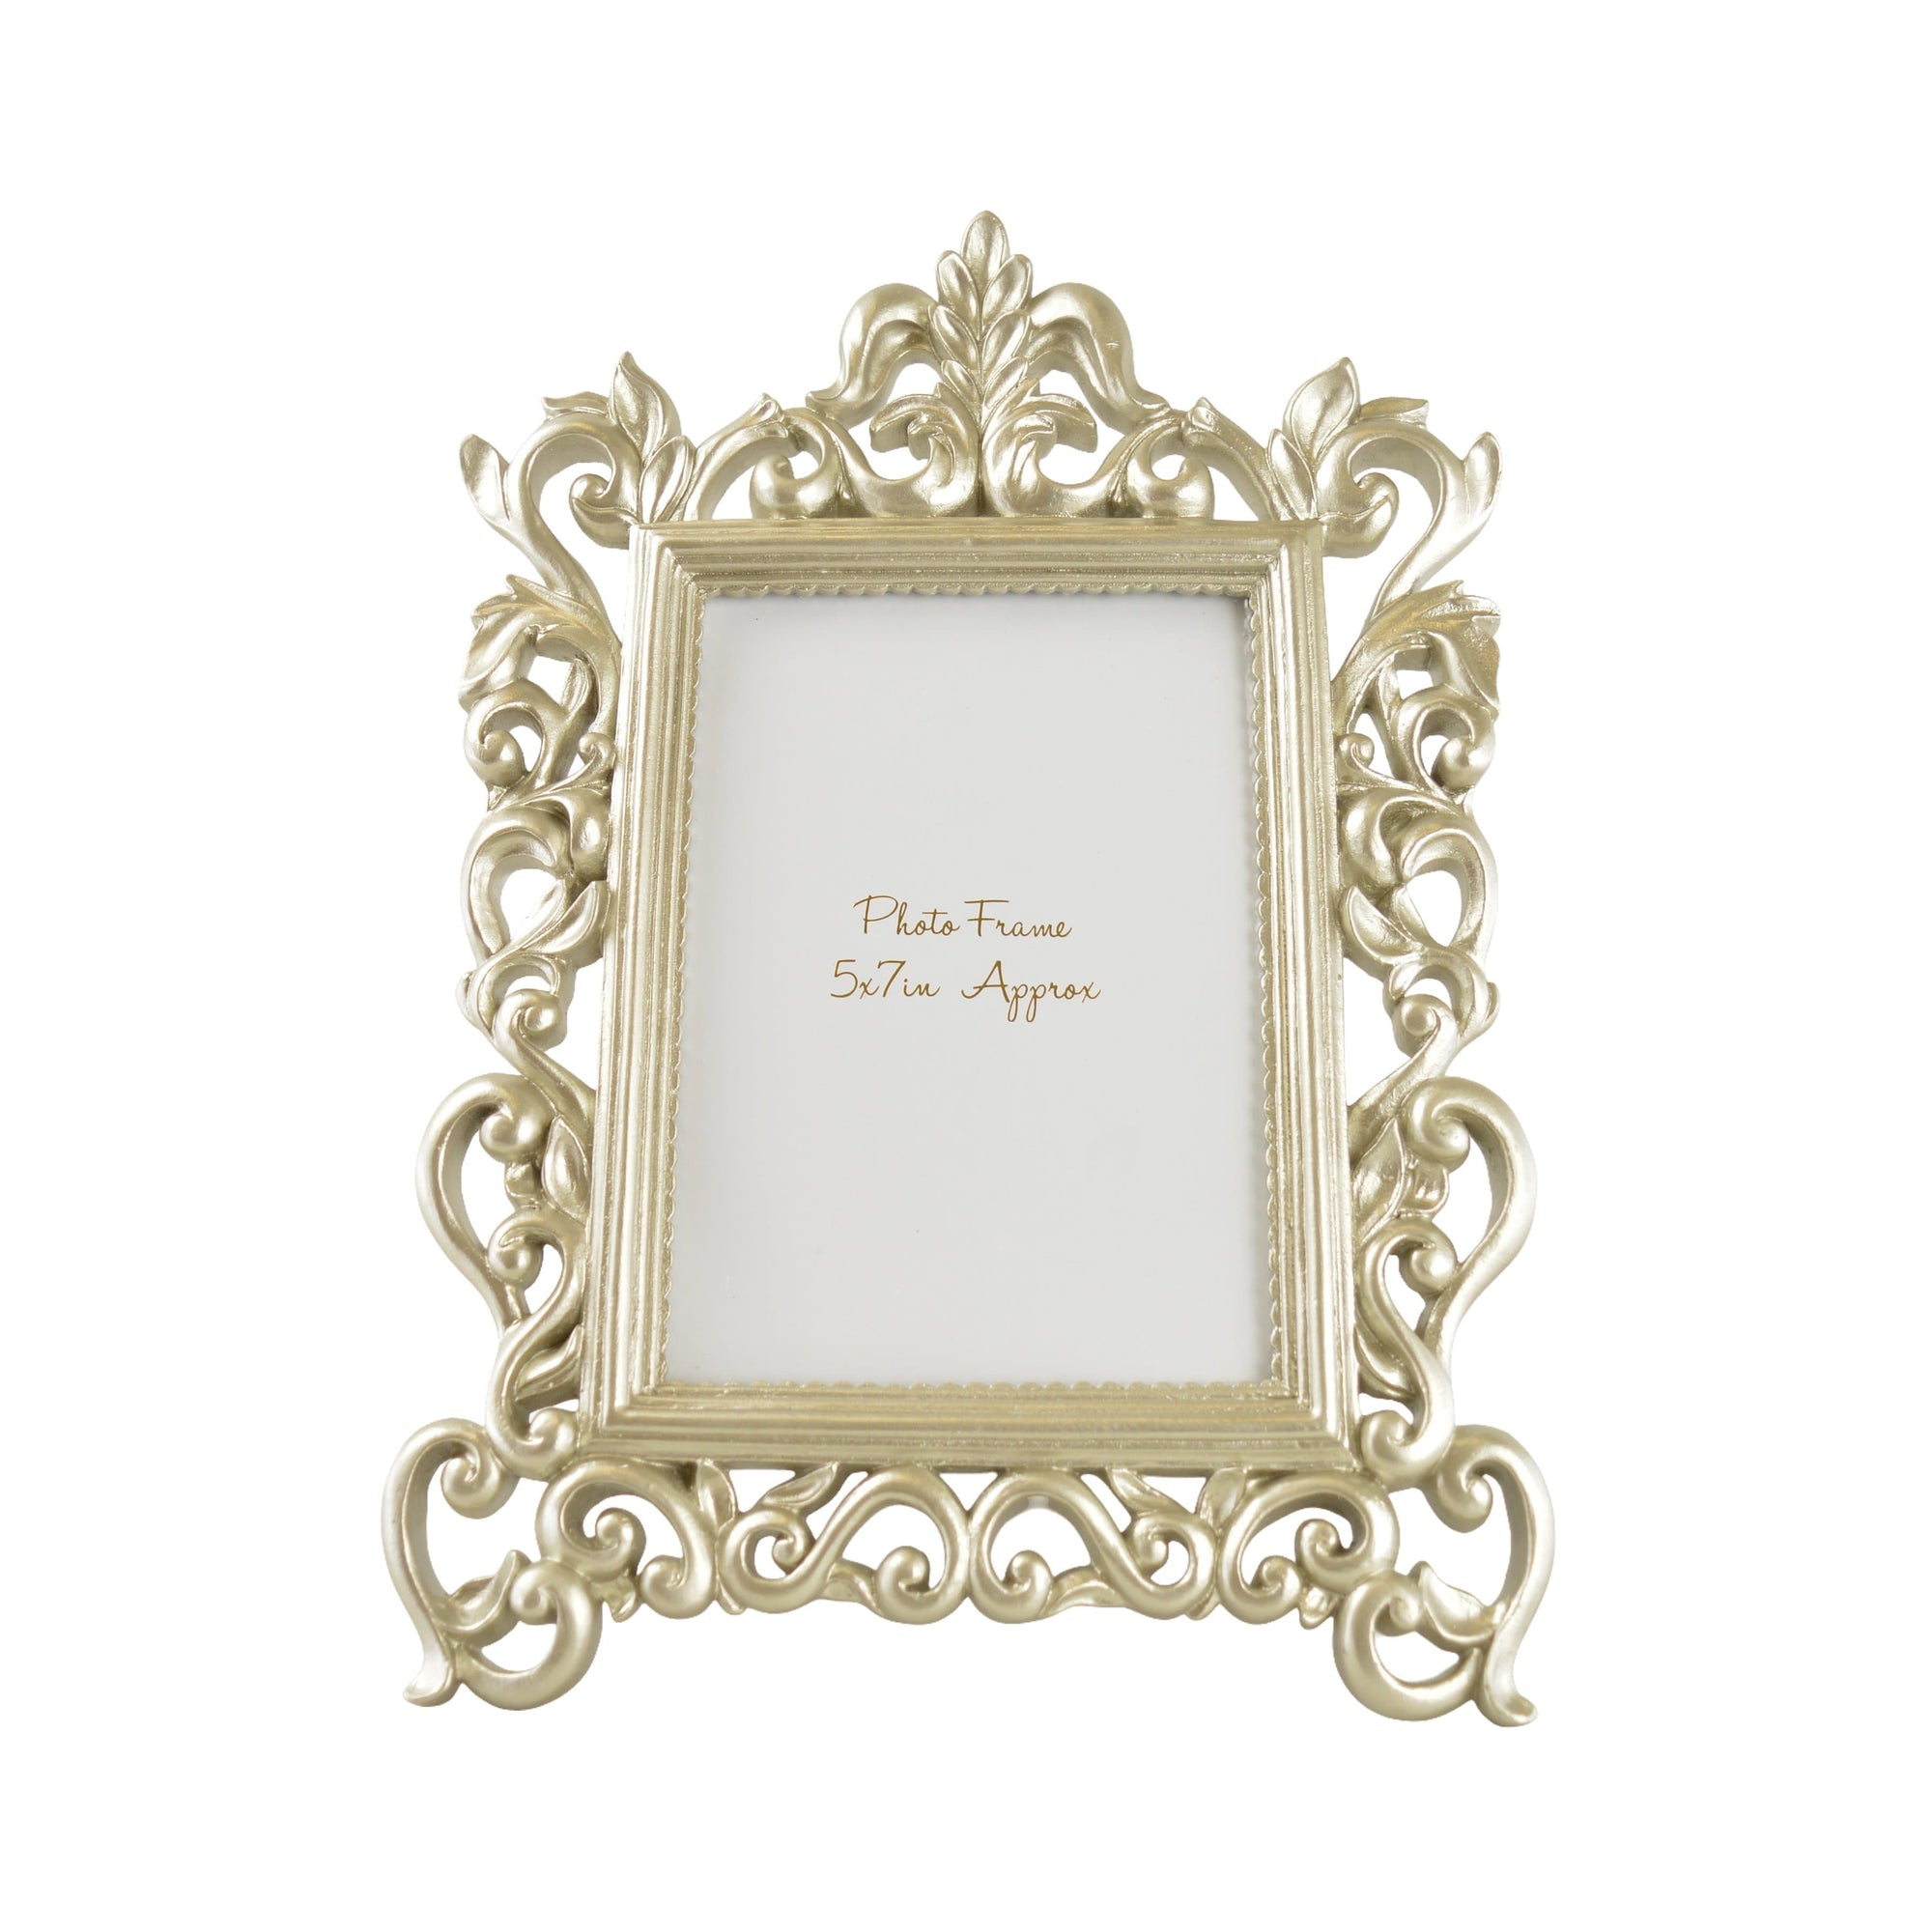 "Candlelight Home Photo Frame 5x7"" ANTIQUE ORNATE PHOTOFRAME - CHAMPAGNE"